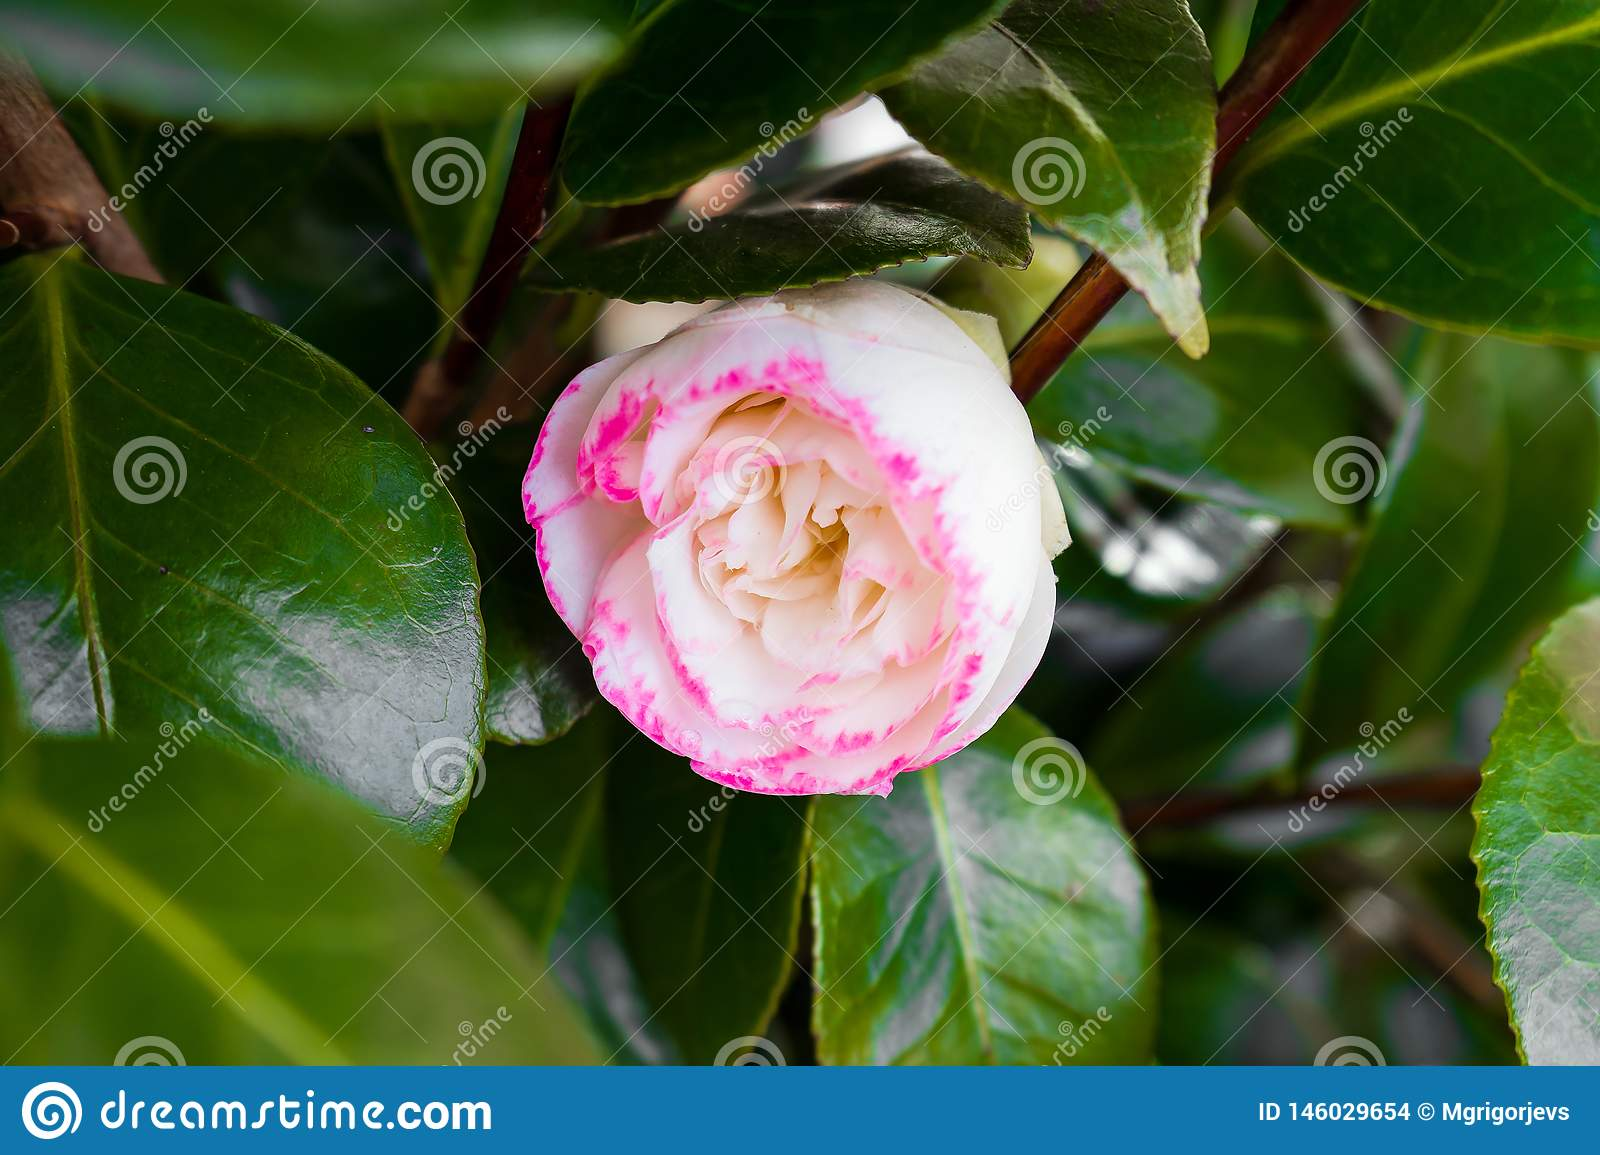 Japanese Camellia, Camellia japonica white and pink flower